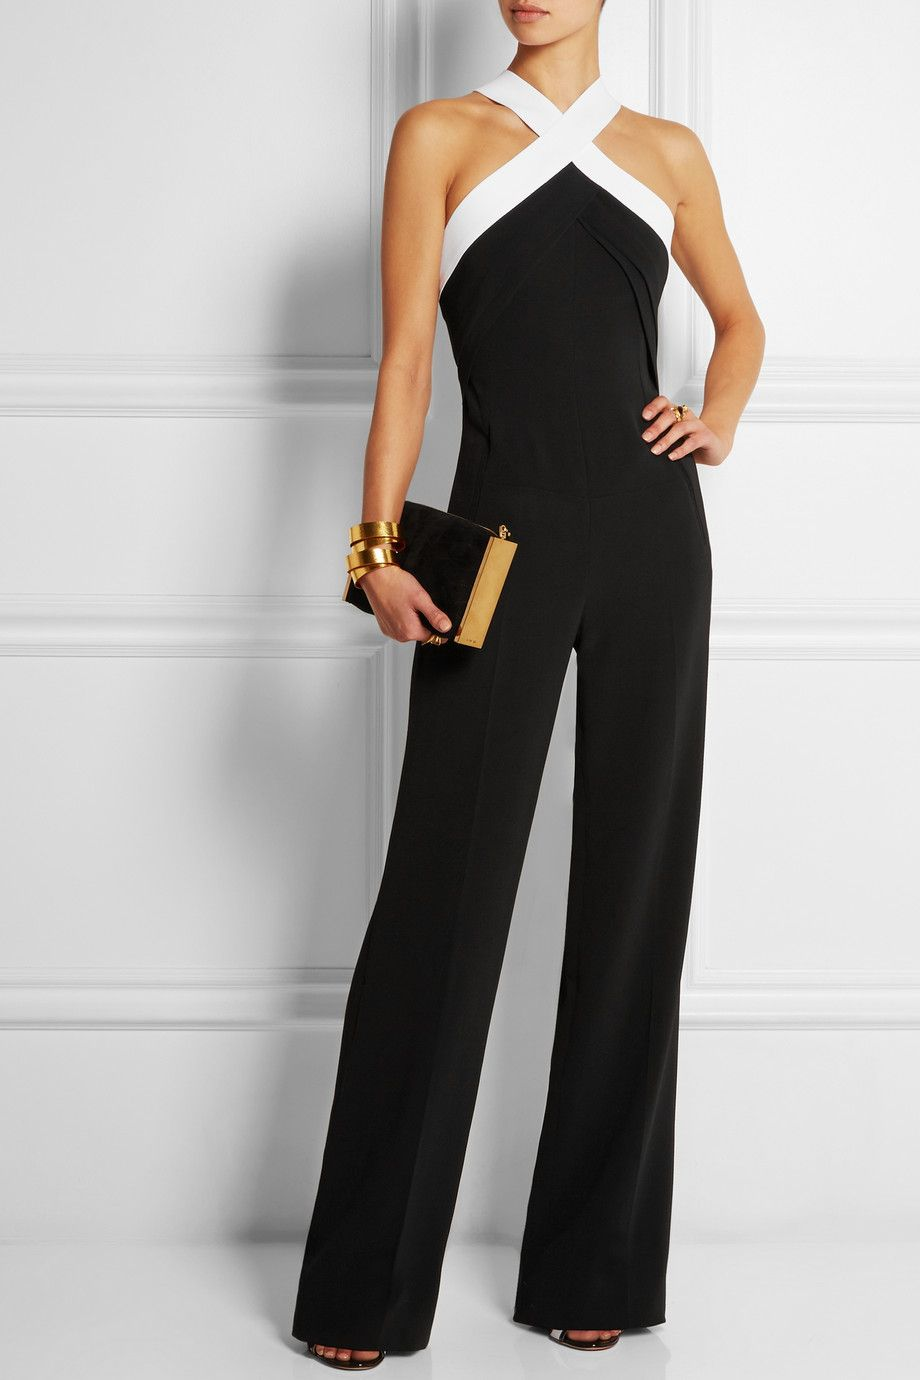 f2c68ef80644 Love this super sleek Roland Mouret jumpsuit as an alternative to a dress  for holiday parties